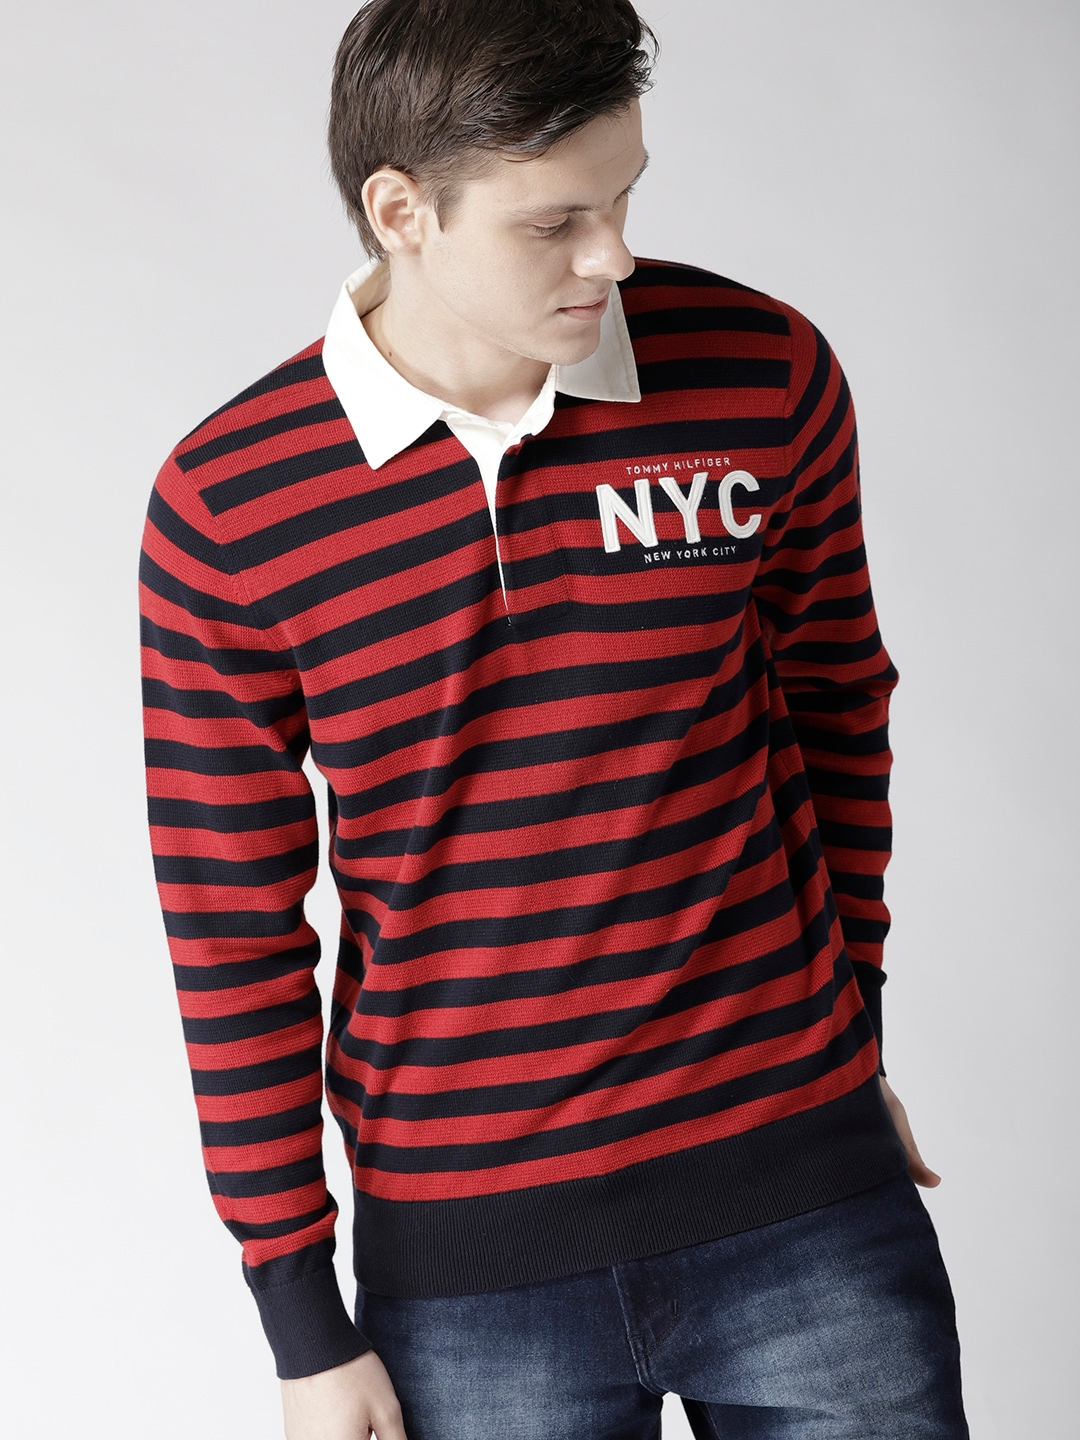 e780942c Buy Tommy Hilfiger Men Navy Blue & Red Striped Pullover - Sweaters ...